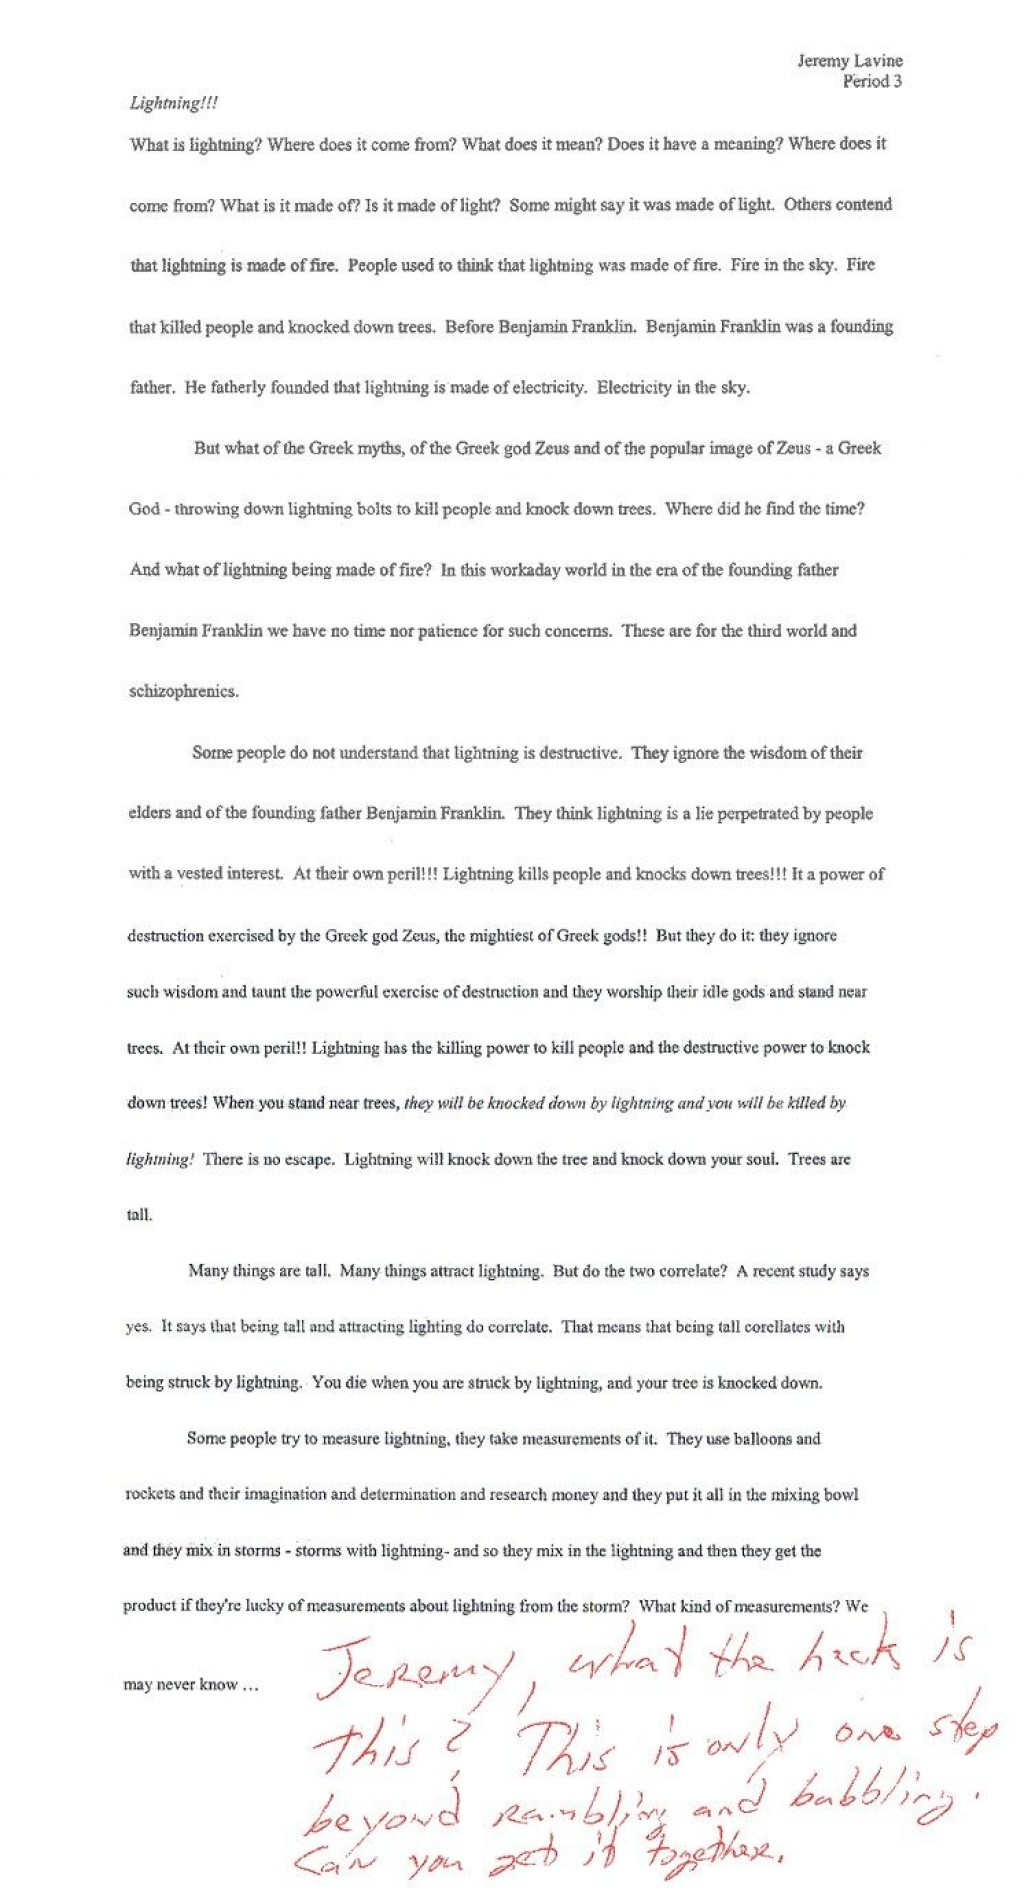 002 Essay  Lightning Funny Essays Stupendous Topics Written By Students For CollegeLarge